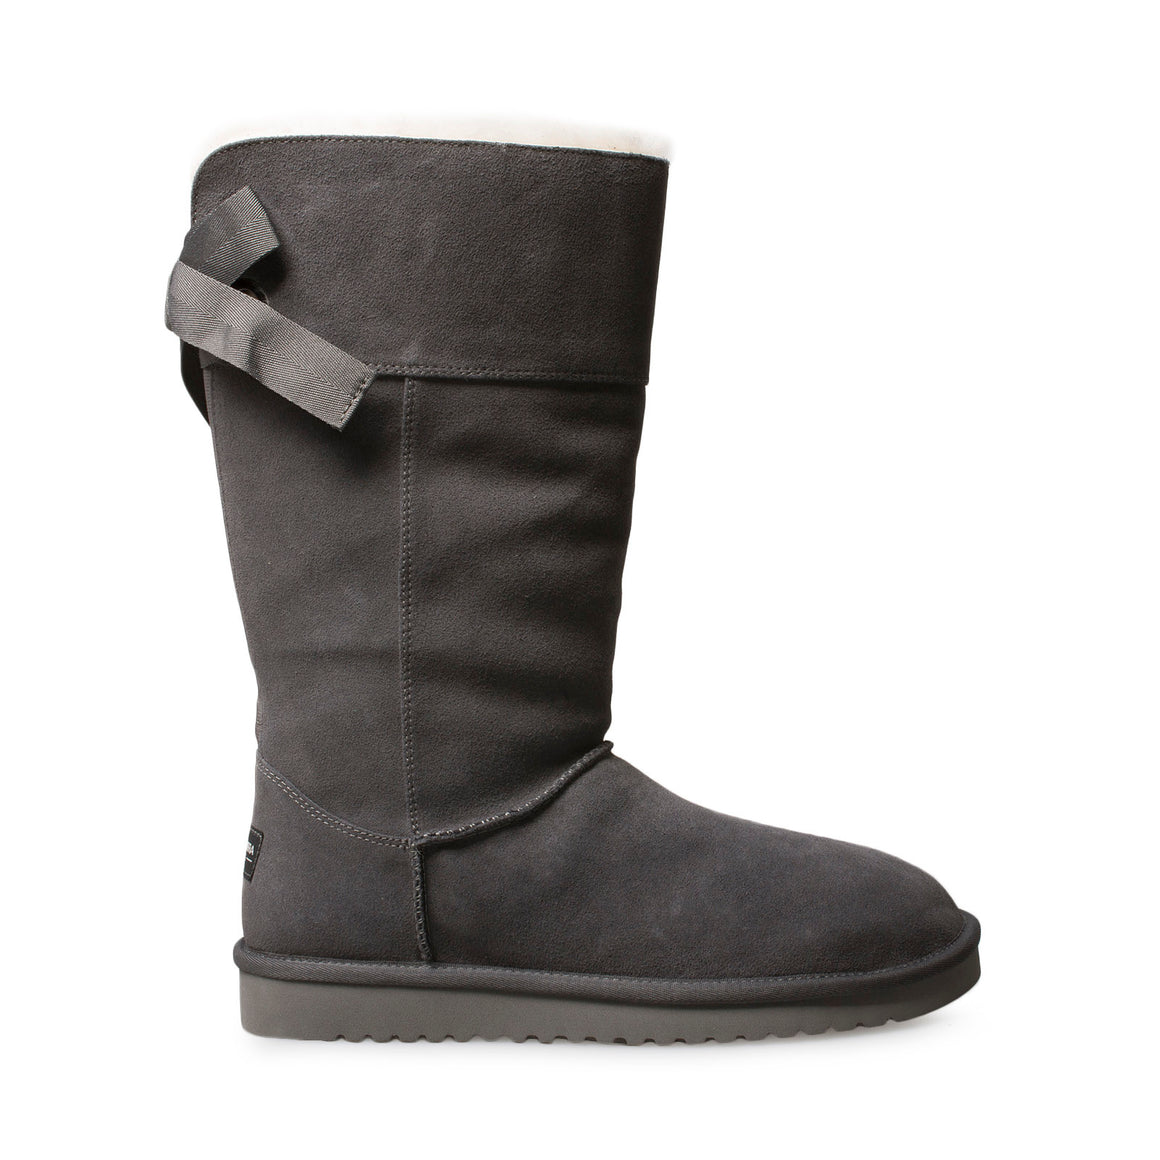 Koolaburra By UGG Andrah Tall Stone Grey Boot's - Women's